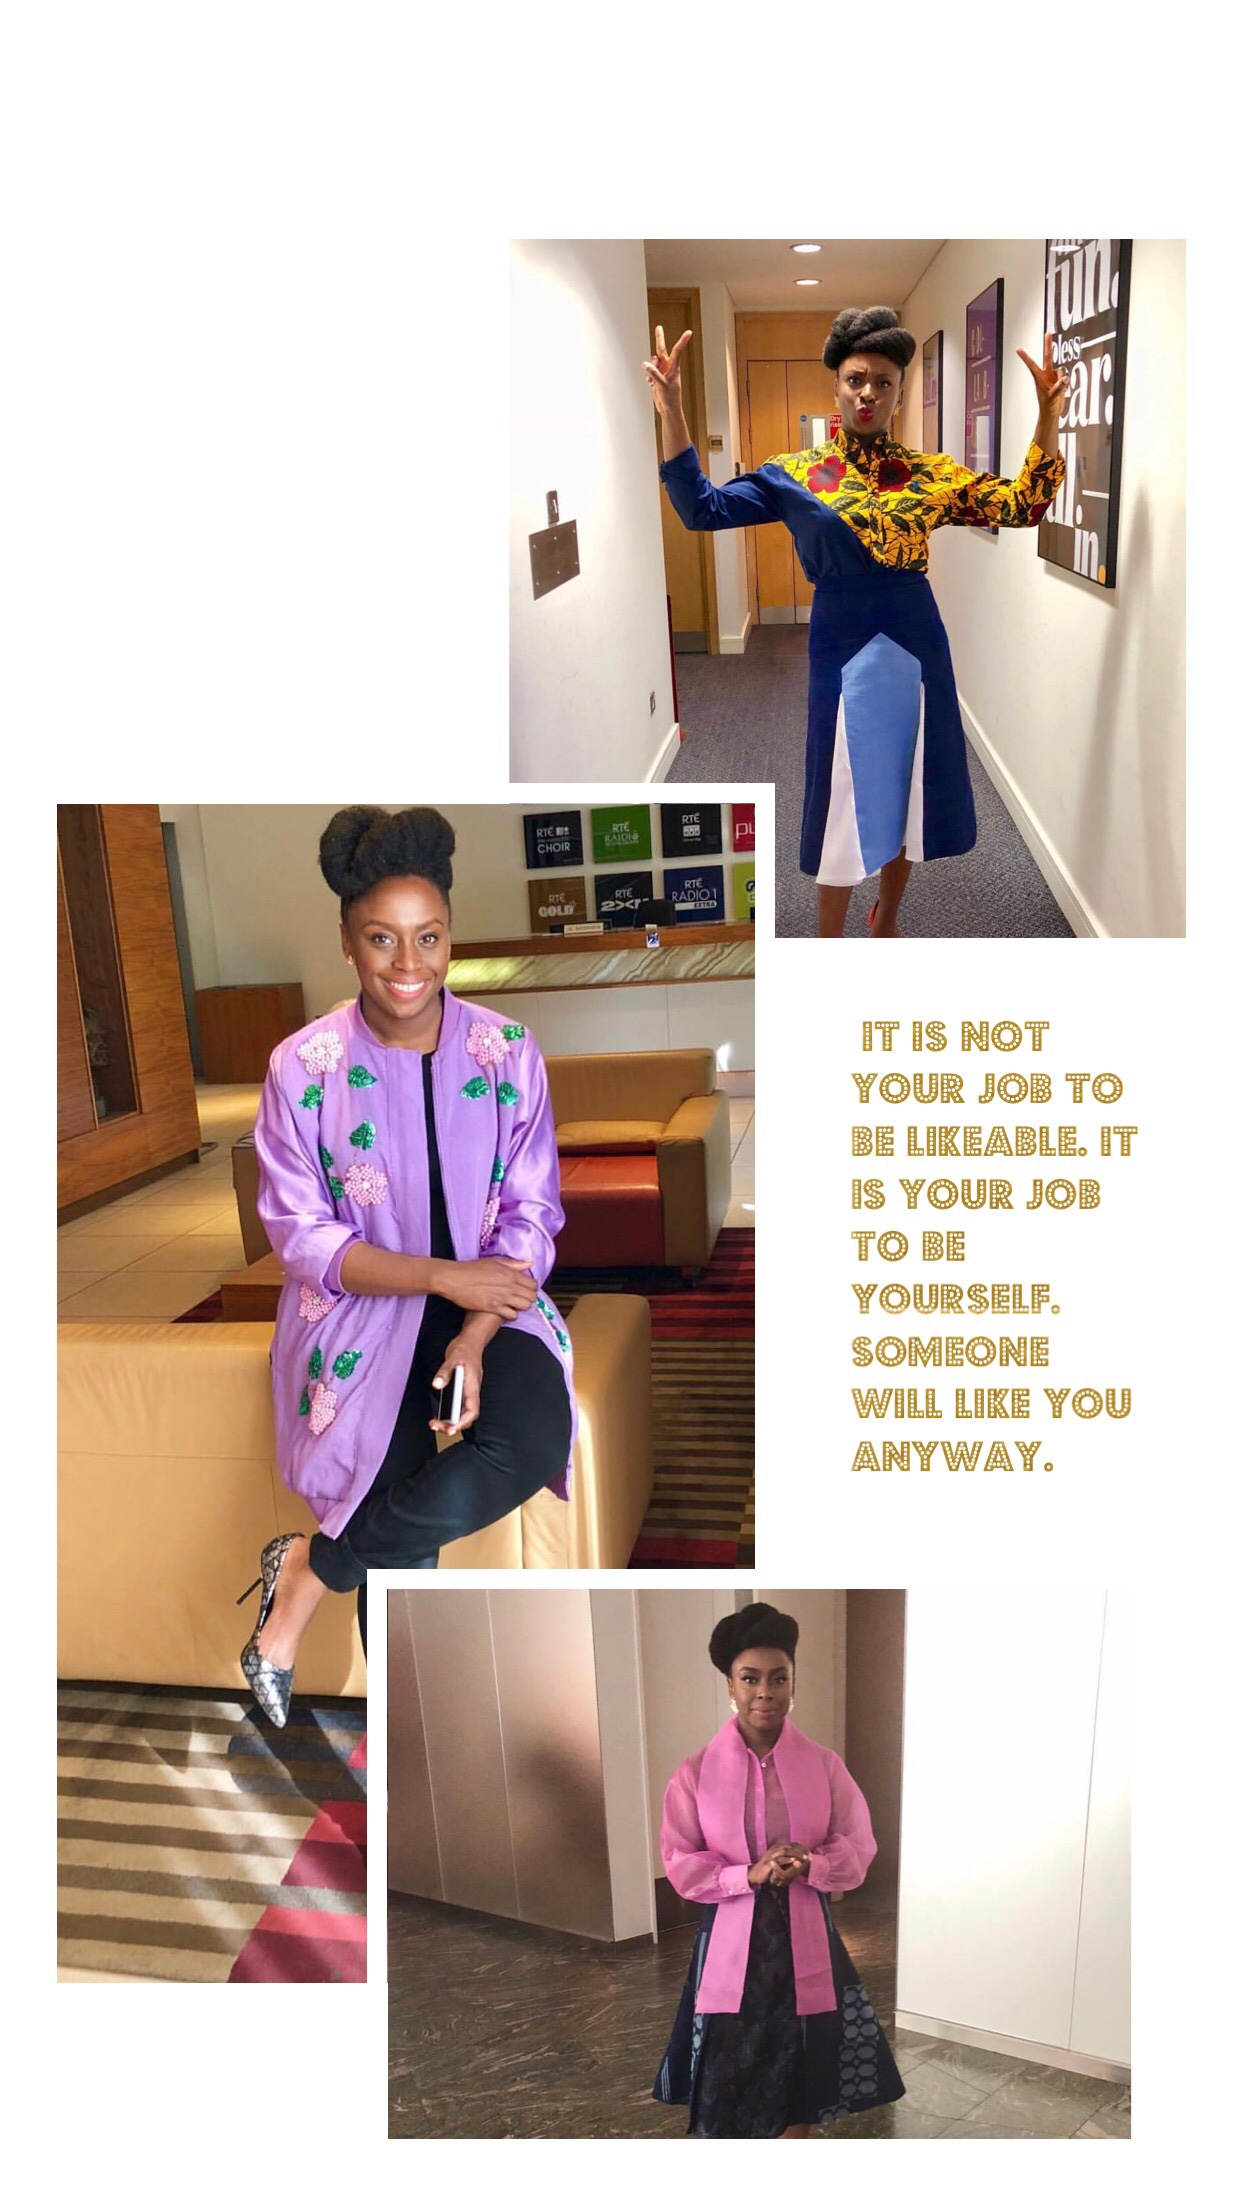 Chimamanda Adichie, Author, Quote on Being Yourself